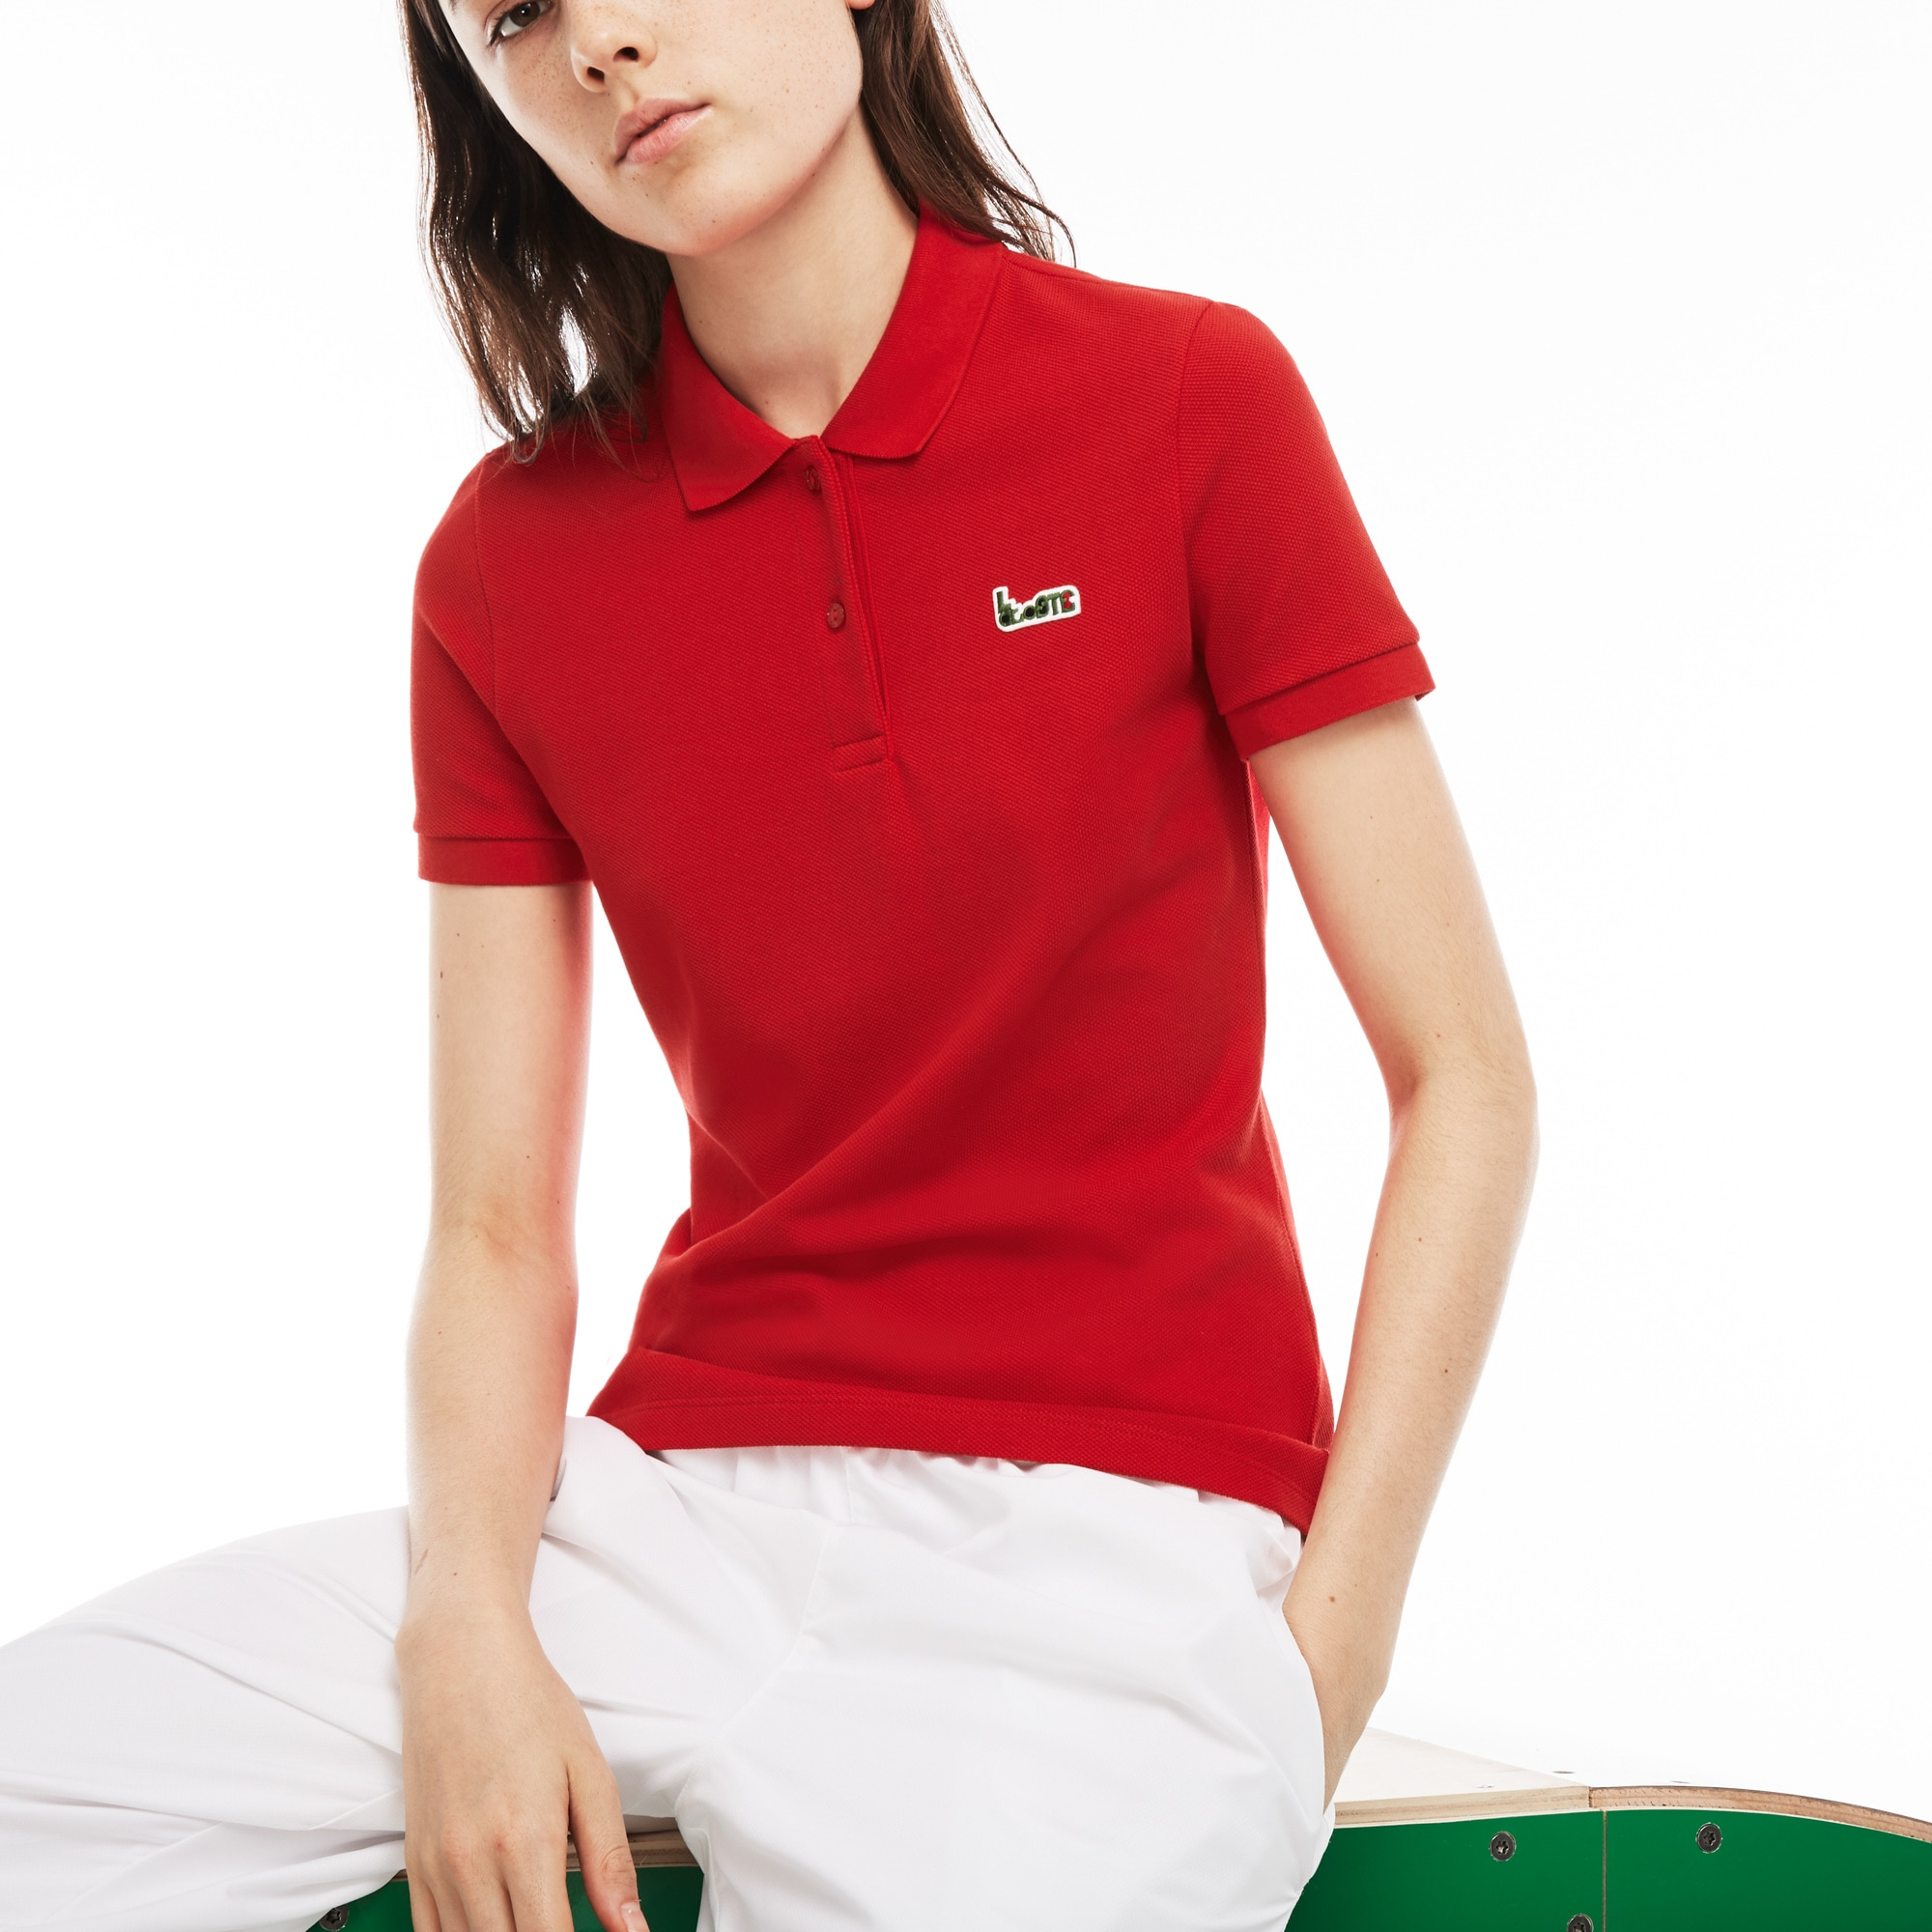 Women's M/M Collab Slim Fit Thick Cotton Piqué Polo